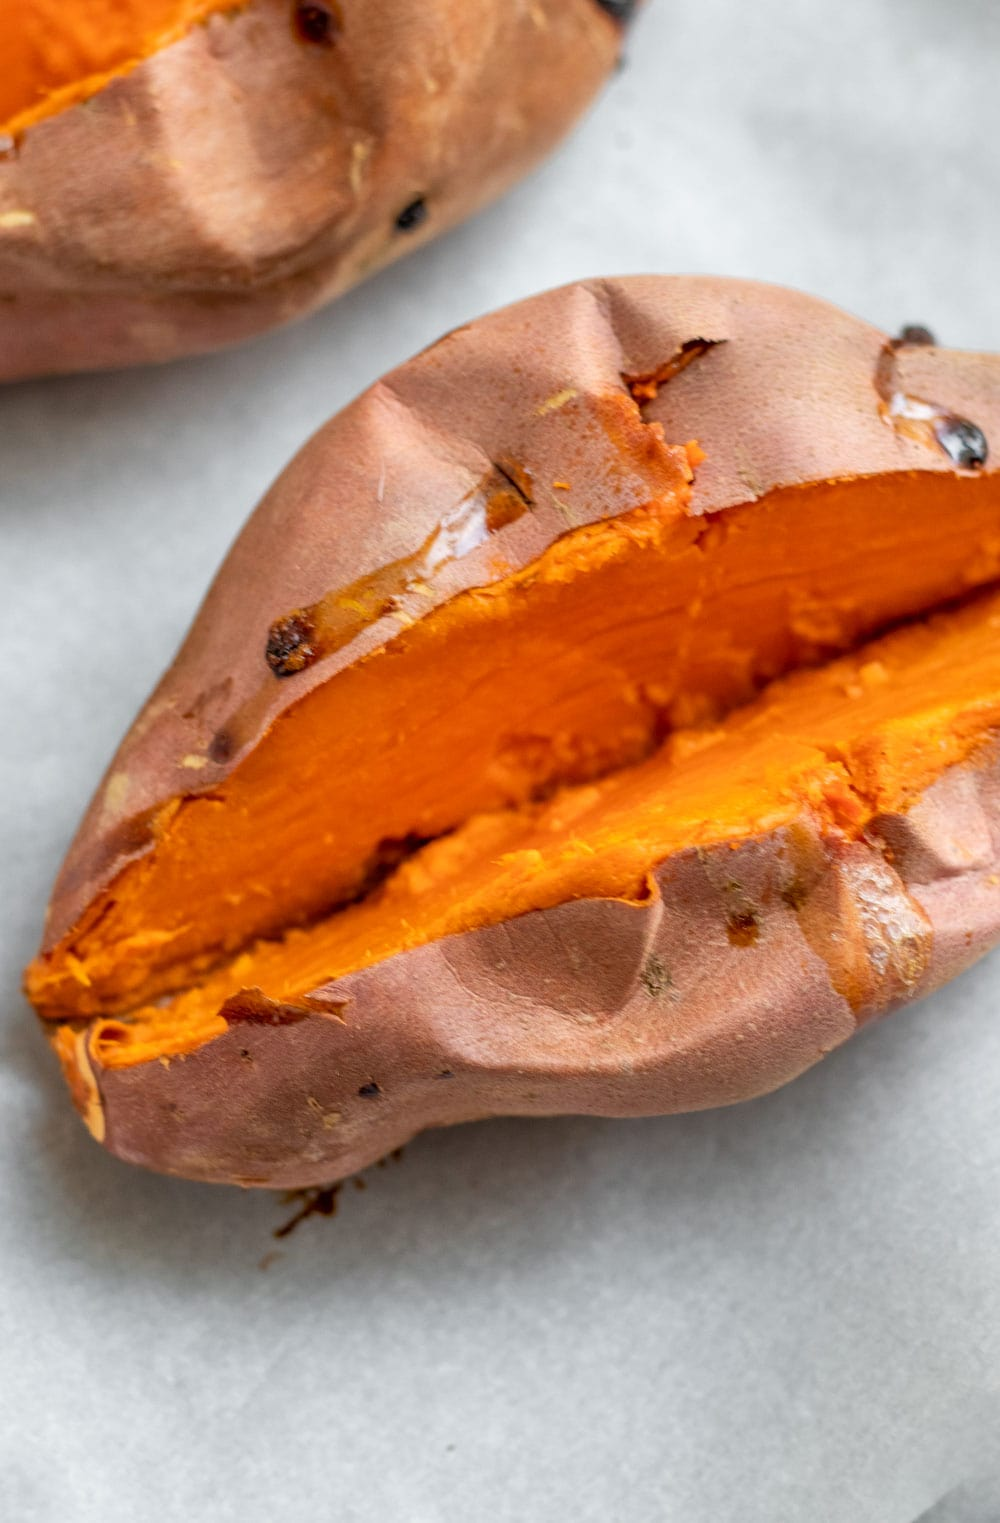 Baked sweet potatoes sliced in half.